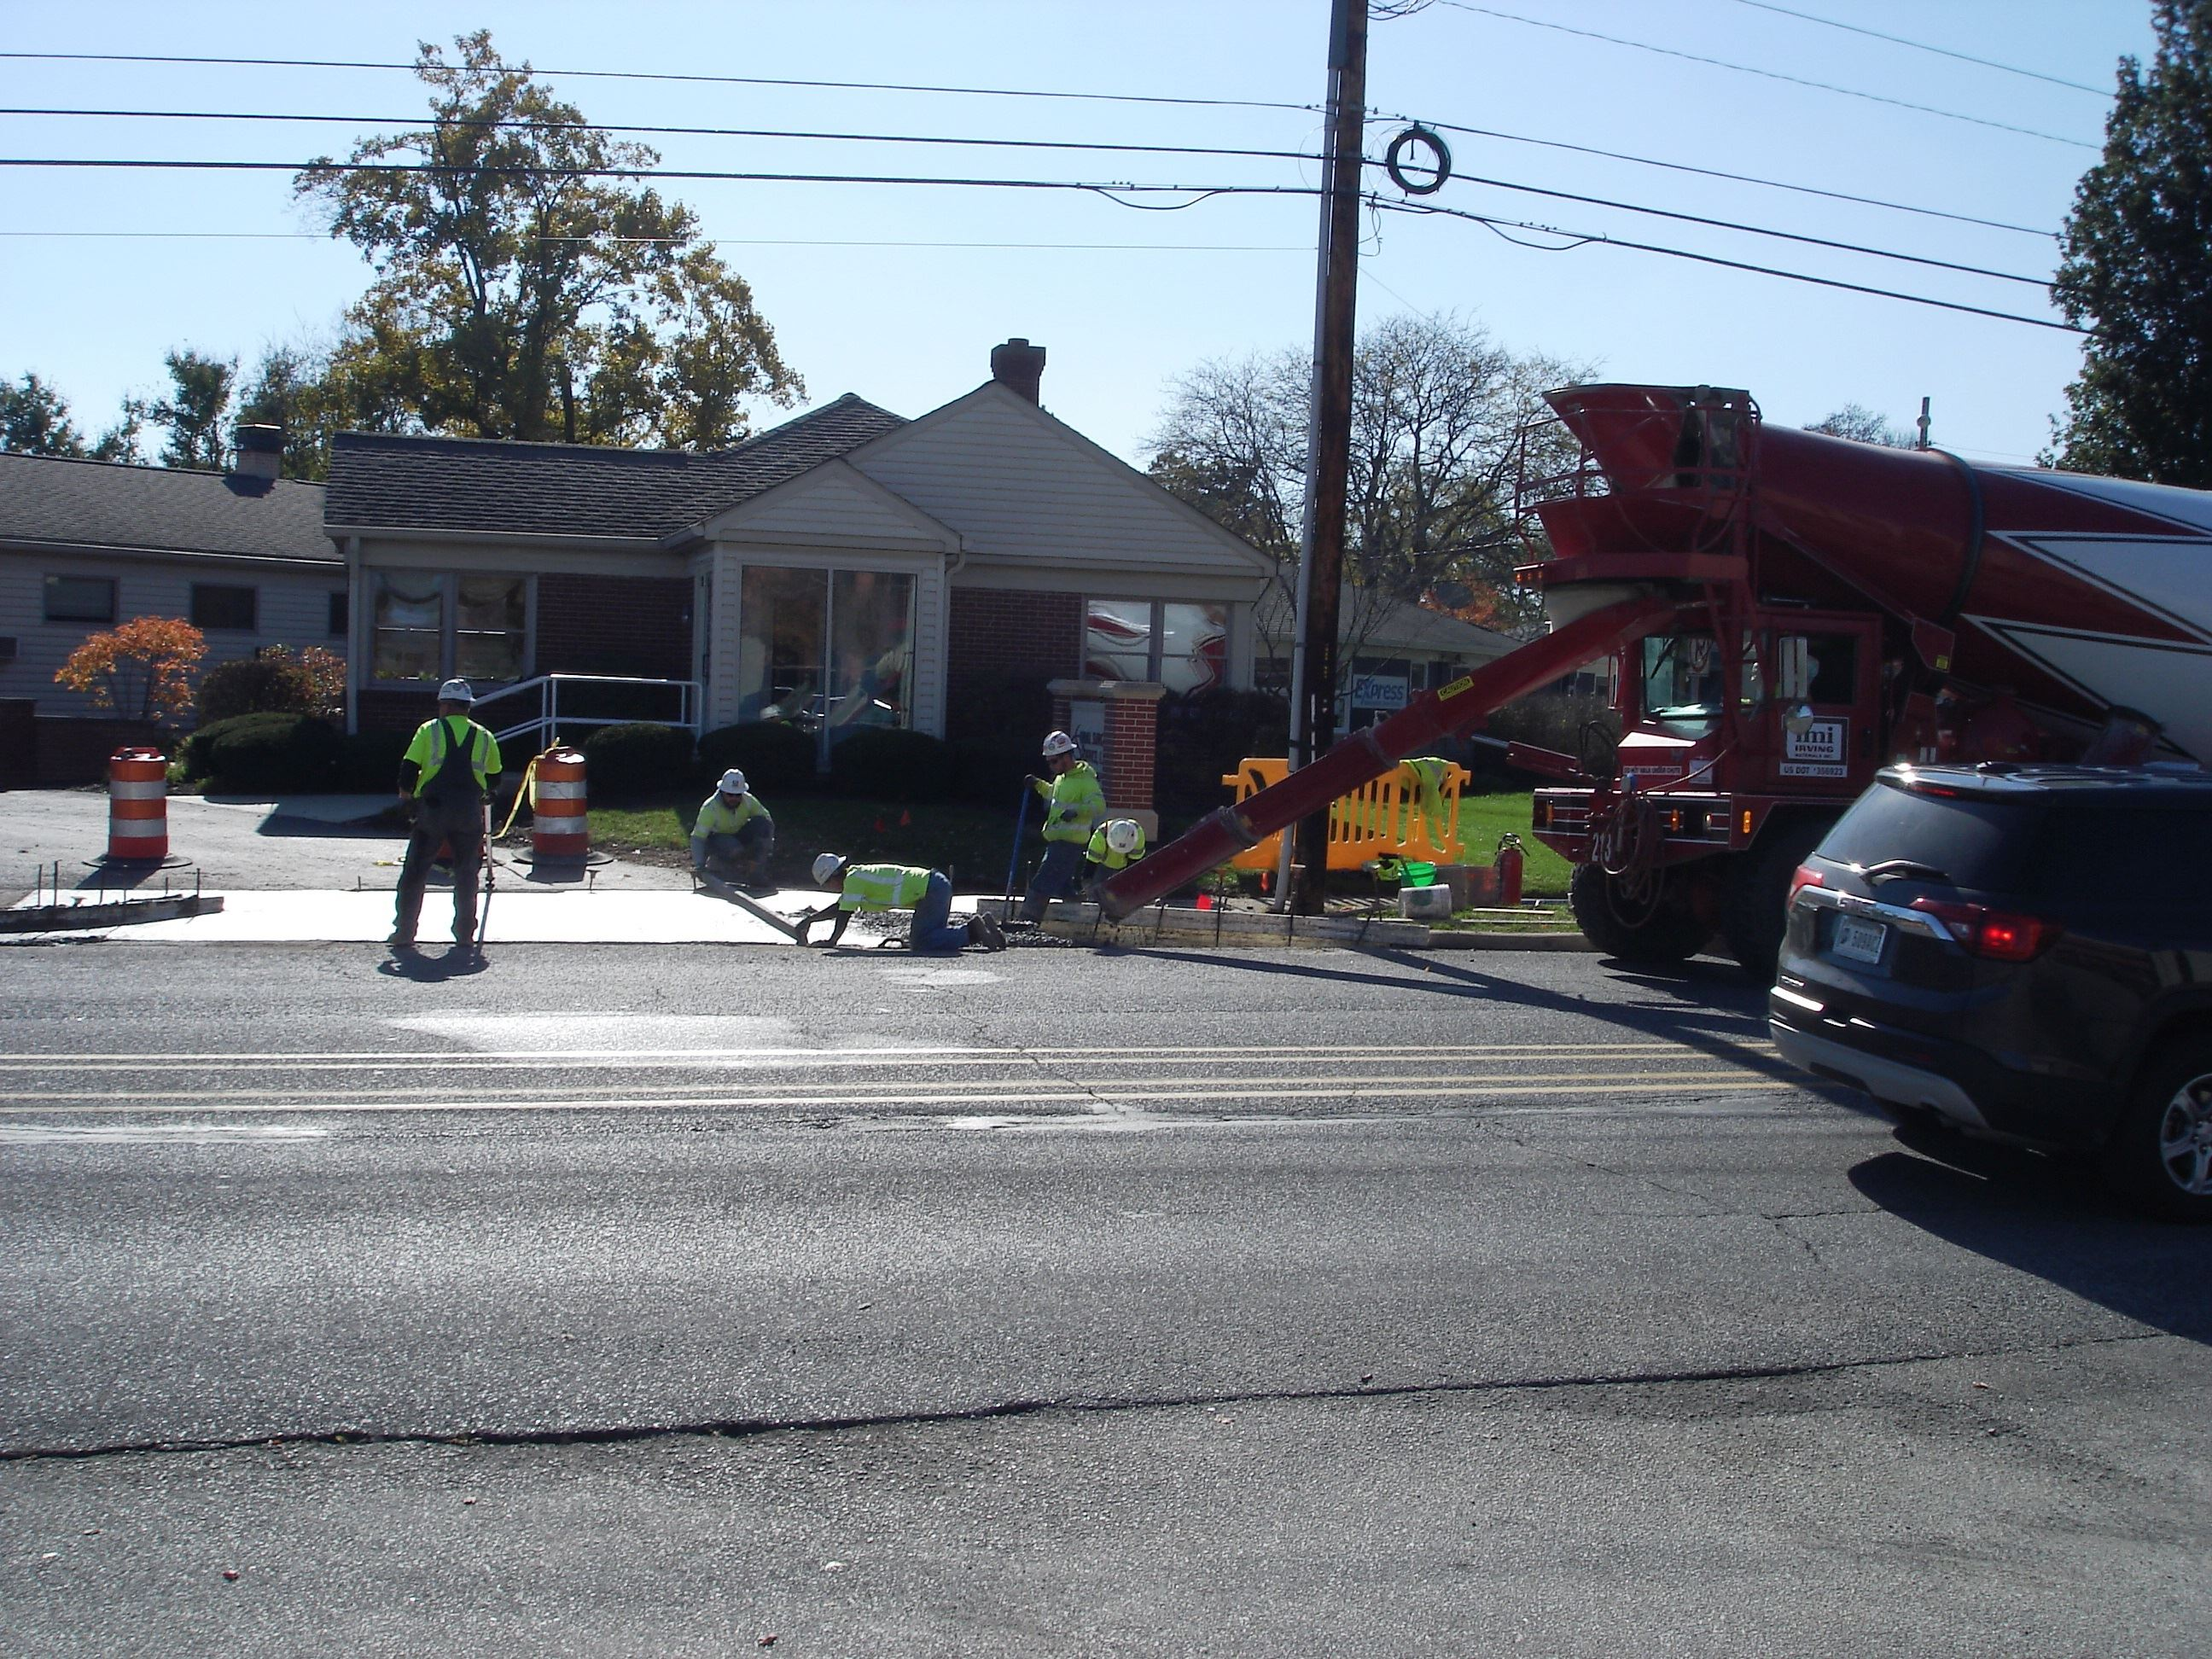 Construction work on a corner of a South Street intersection